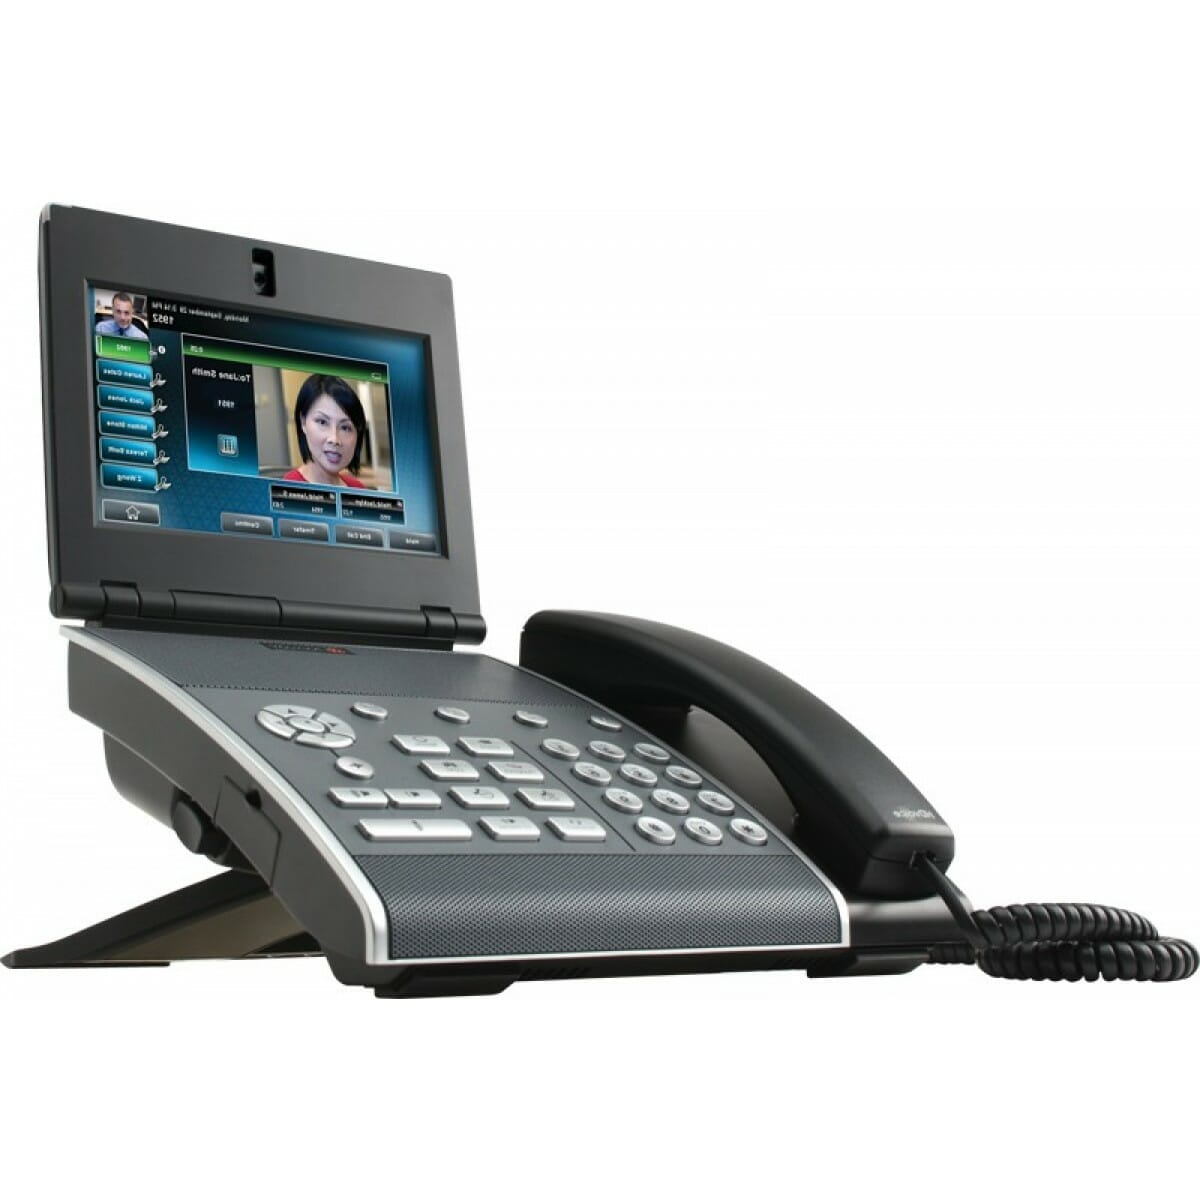 polycom-vvx-1500-ip-phone-2200-18061-025-8fa